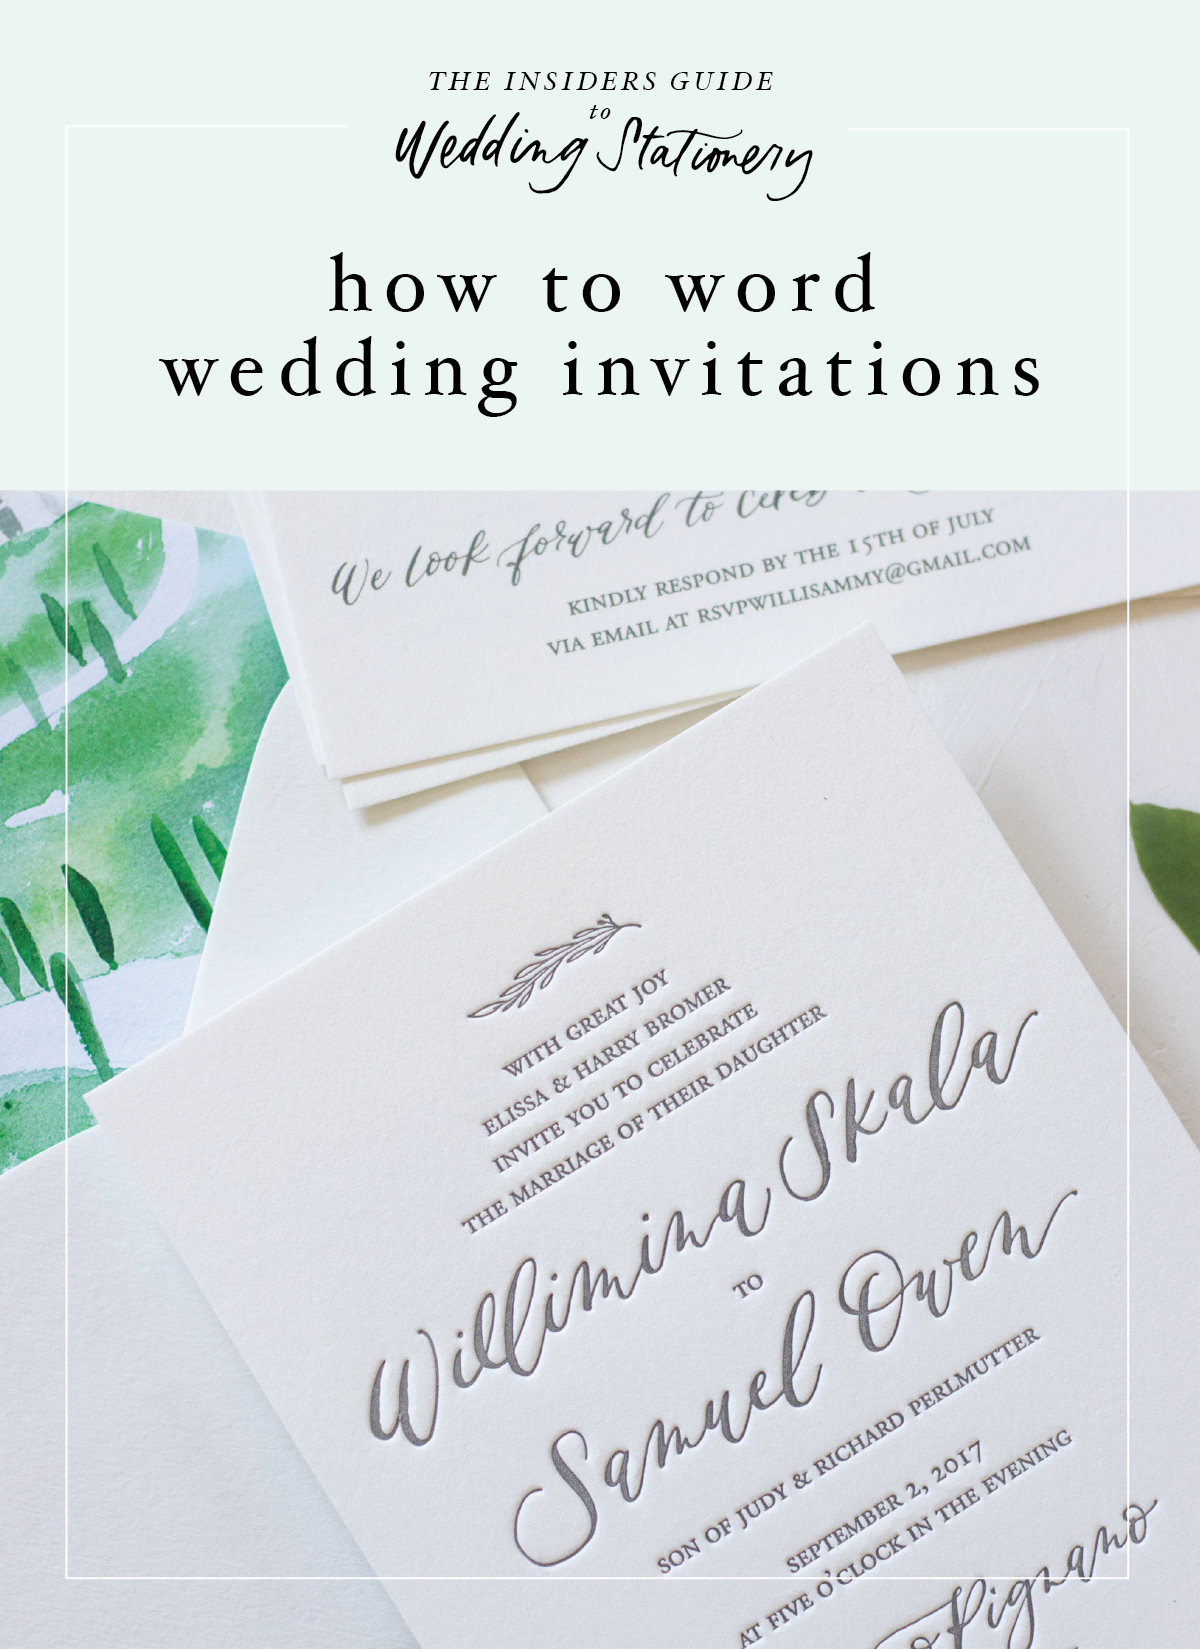 How To Word Your Wedding Invitation Bright Room Studio Bright Wedding Invitations Wedding Invitations Wedding Invitation Wording Casual